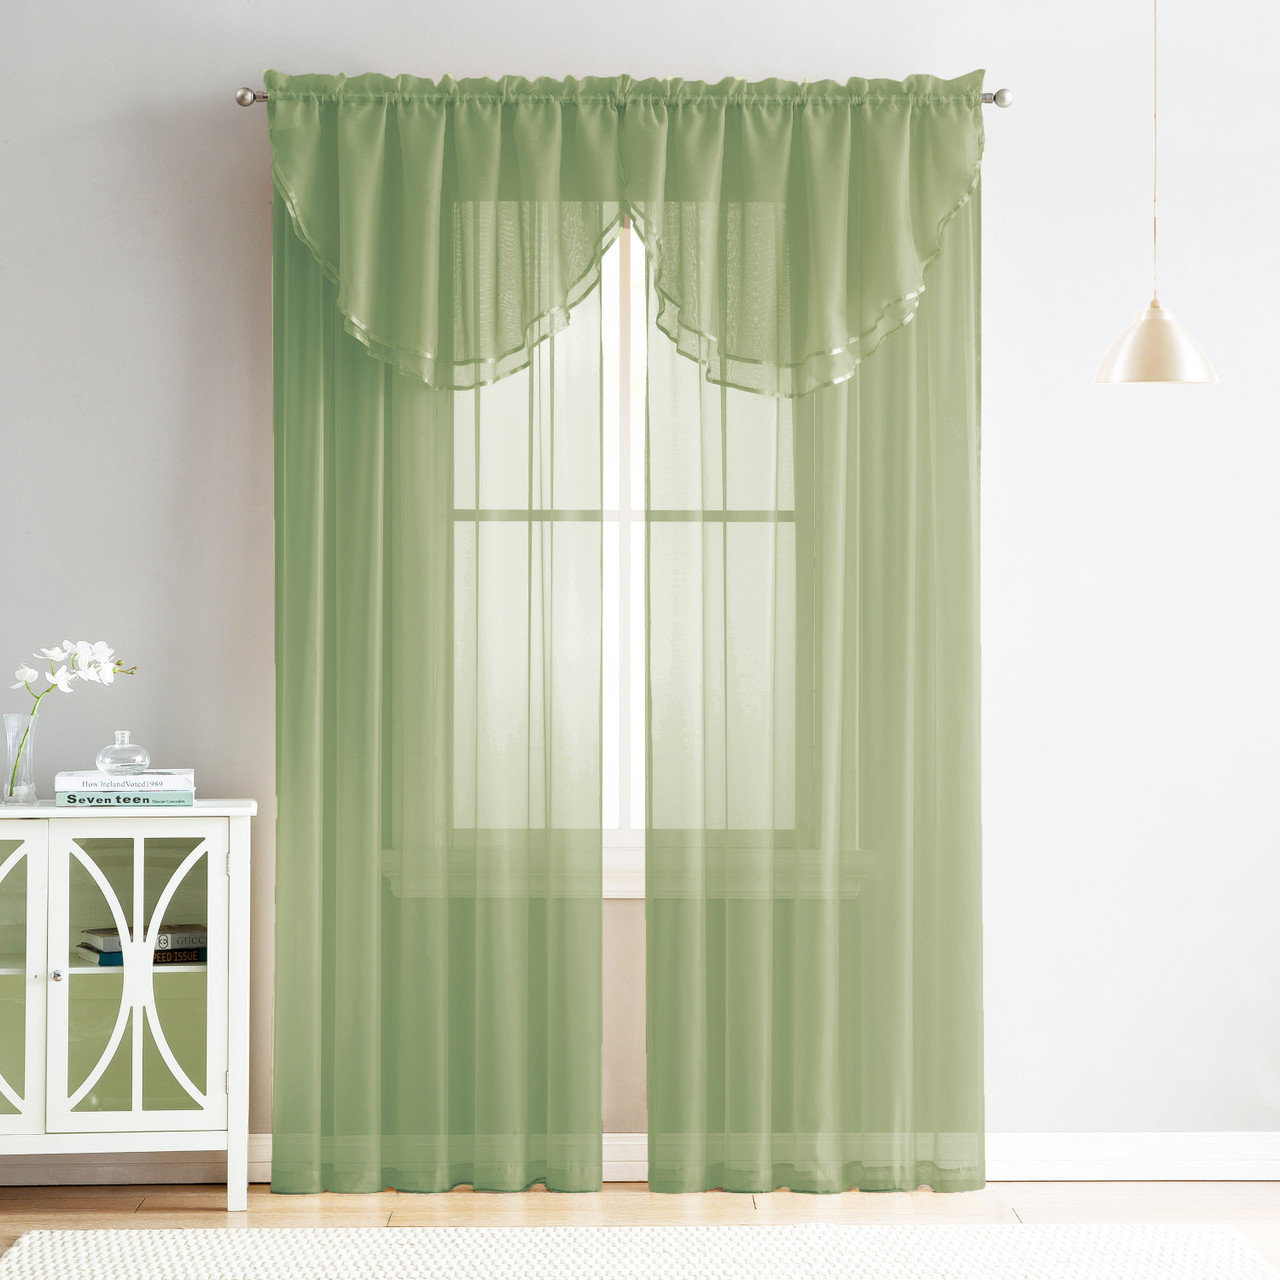 4 Piece Sheer Window Curtain Set For Living Room Dining Room Bay Windows 2 Voile Valance Curtains And 2 Panels 90 In Long Sage Greem